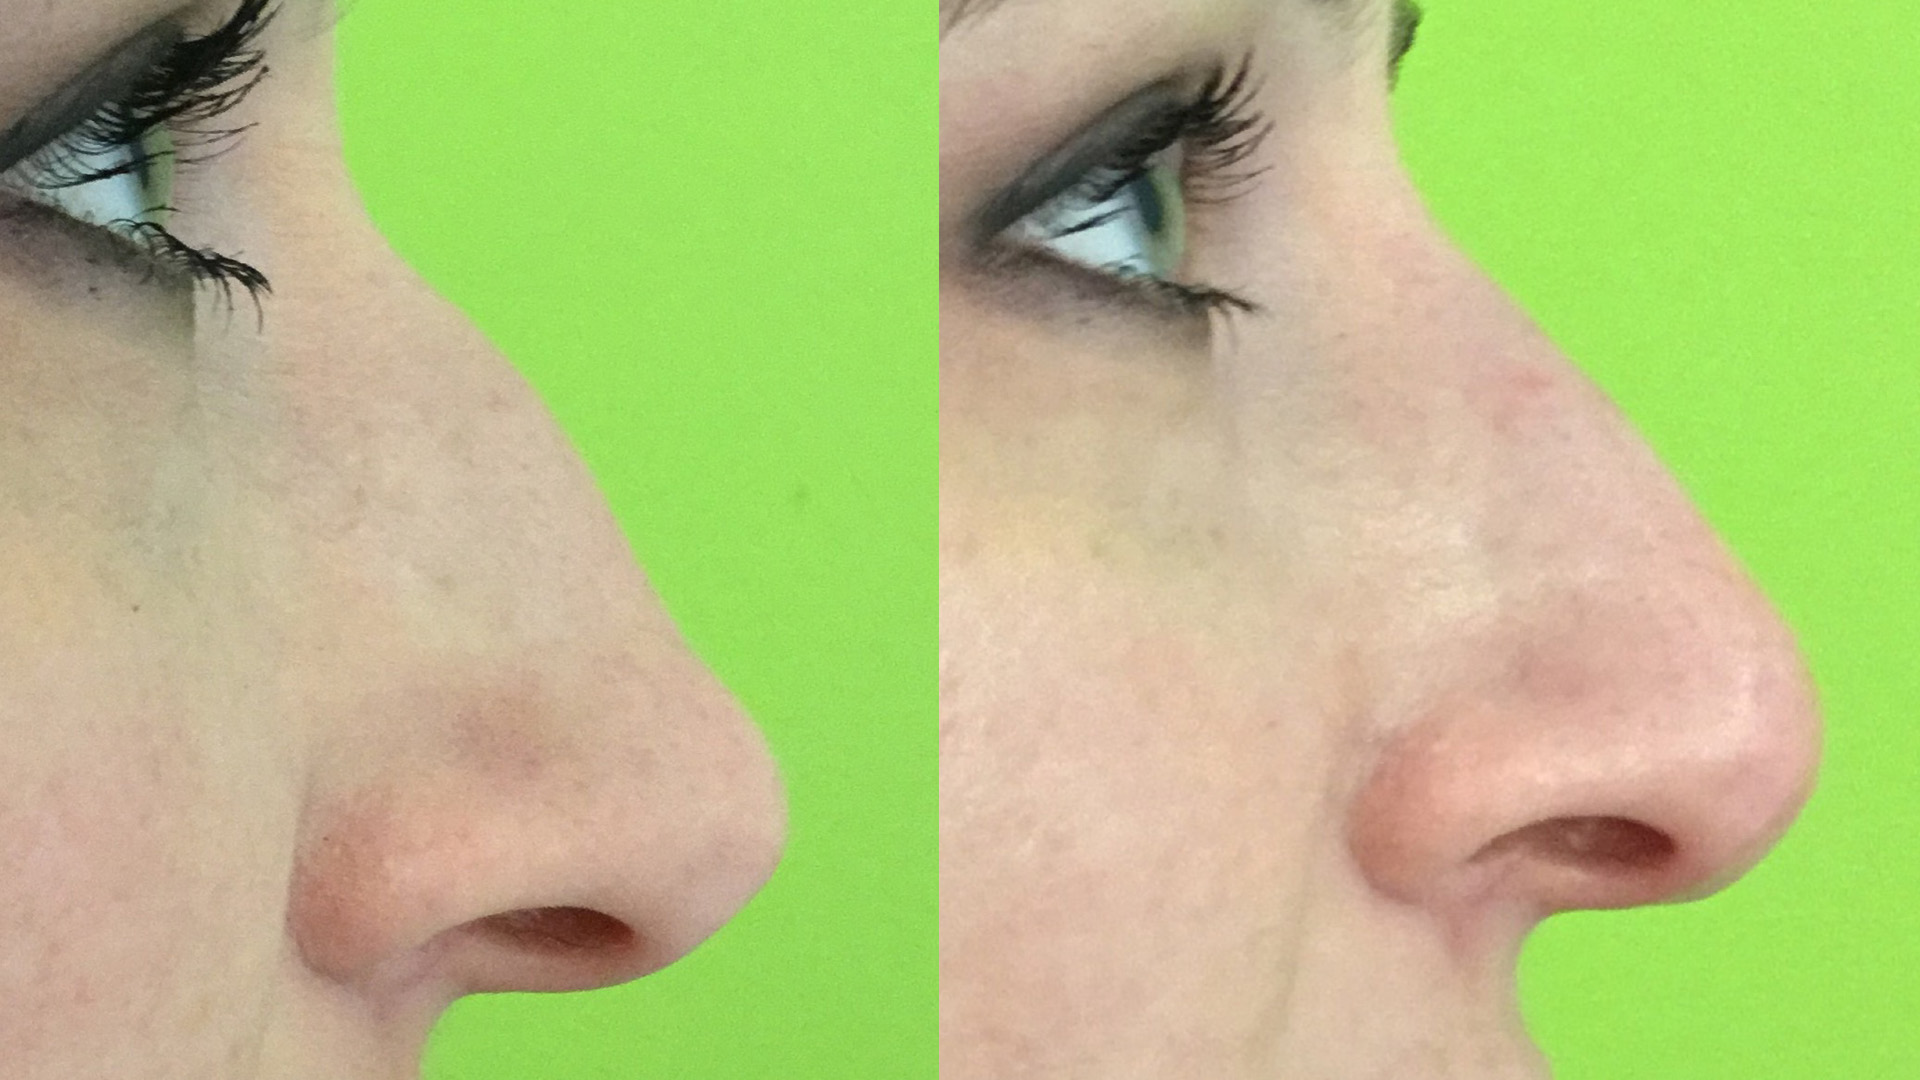 Non Surgical Nose Job With Dermal Filler At Well Medical Arts.